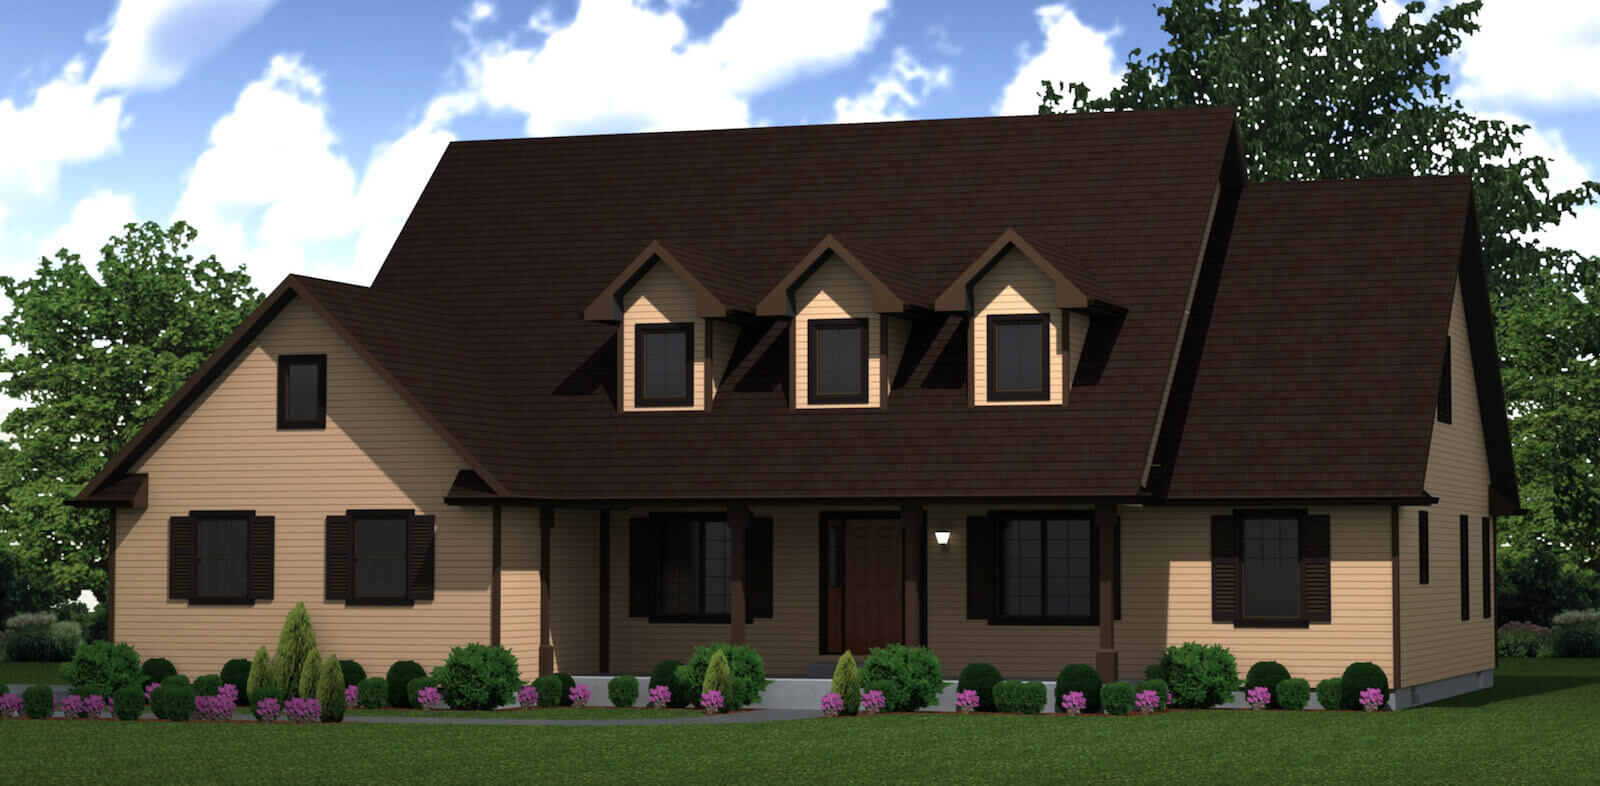 2798 sq.ft. timber mart house 4 bed 3 bath exterior render